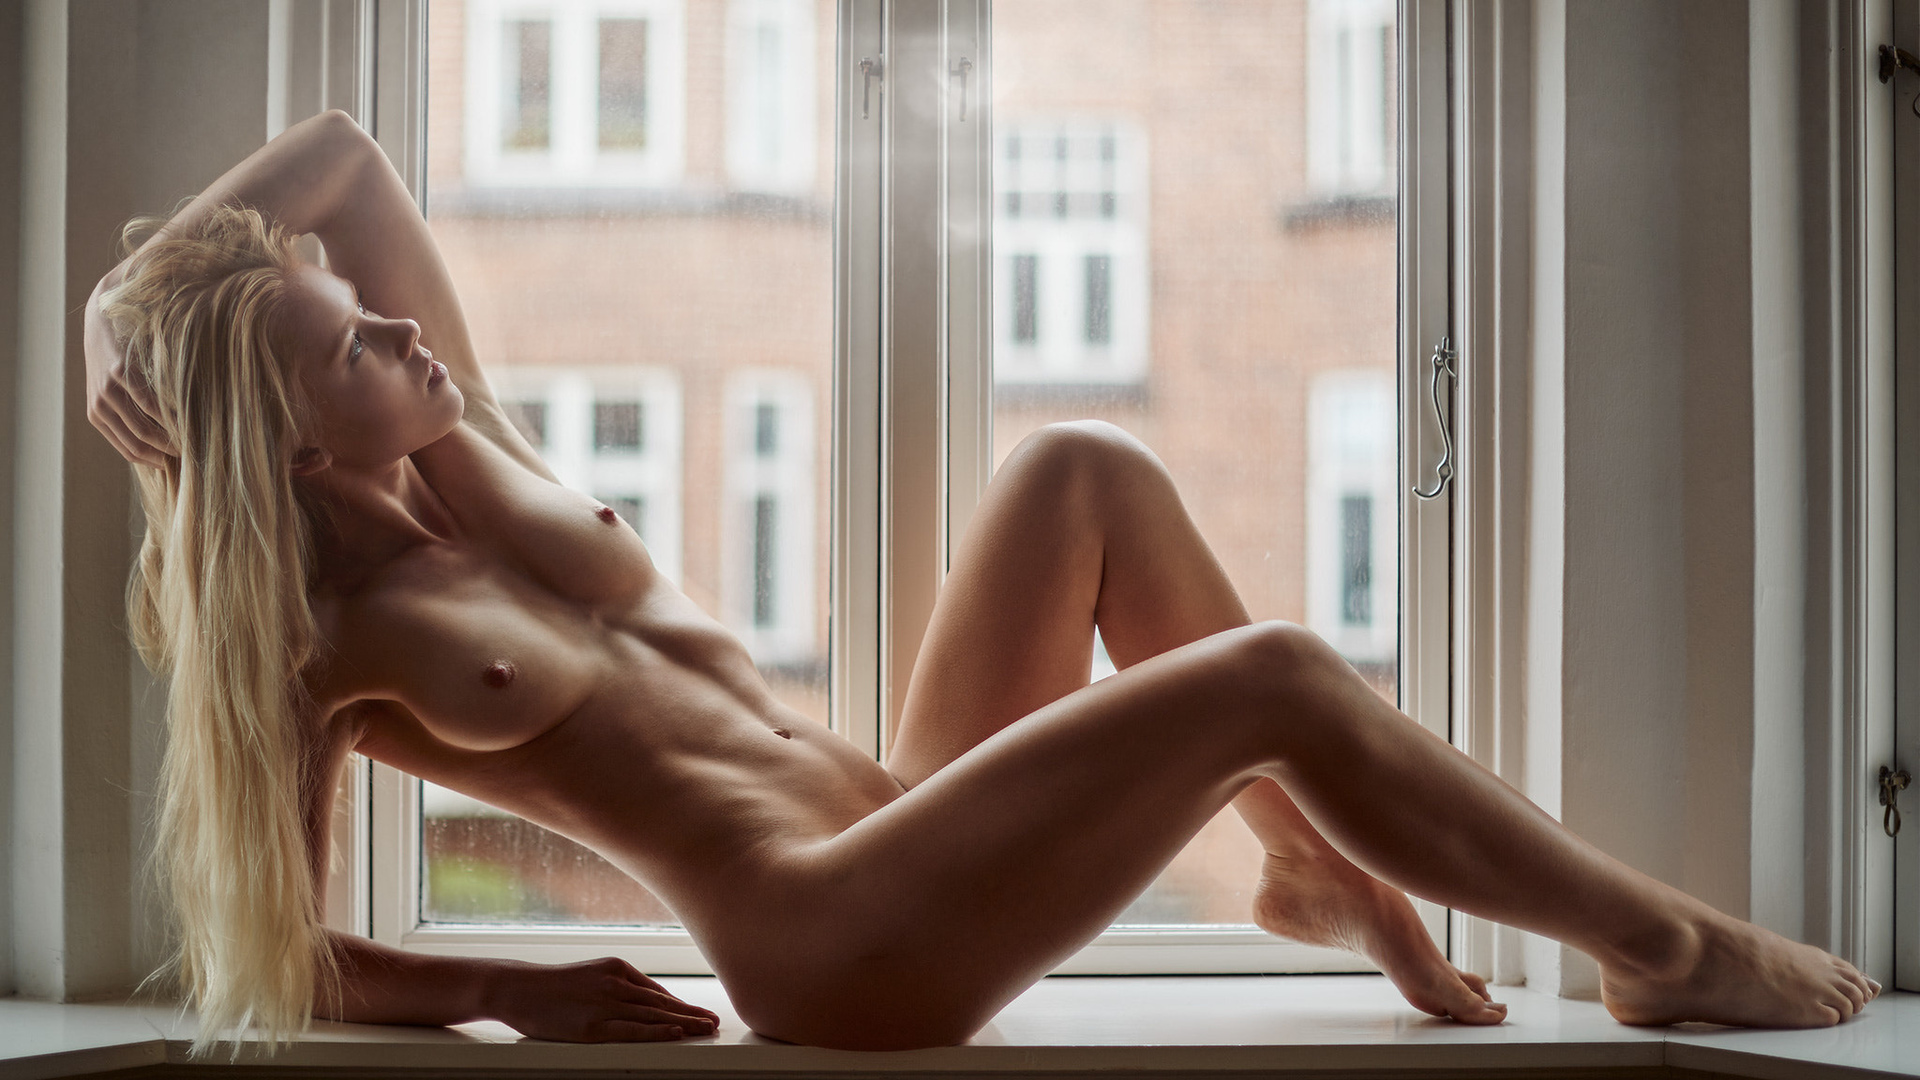 Sexy Naked Women Beautiful Erotic Nudes Beauty Of Nude Woman